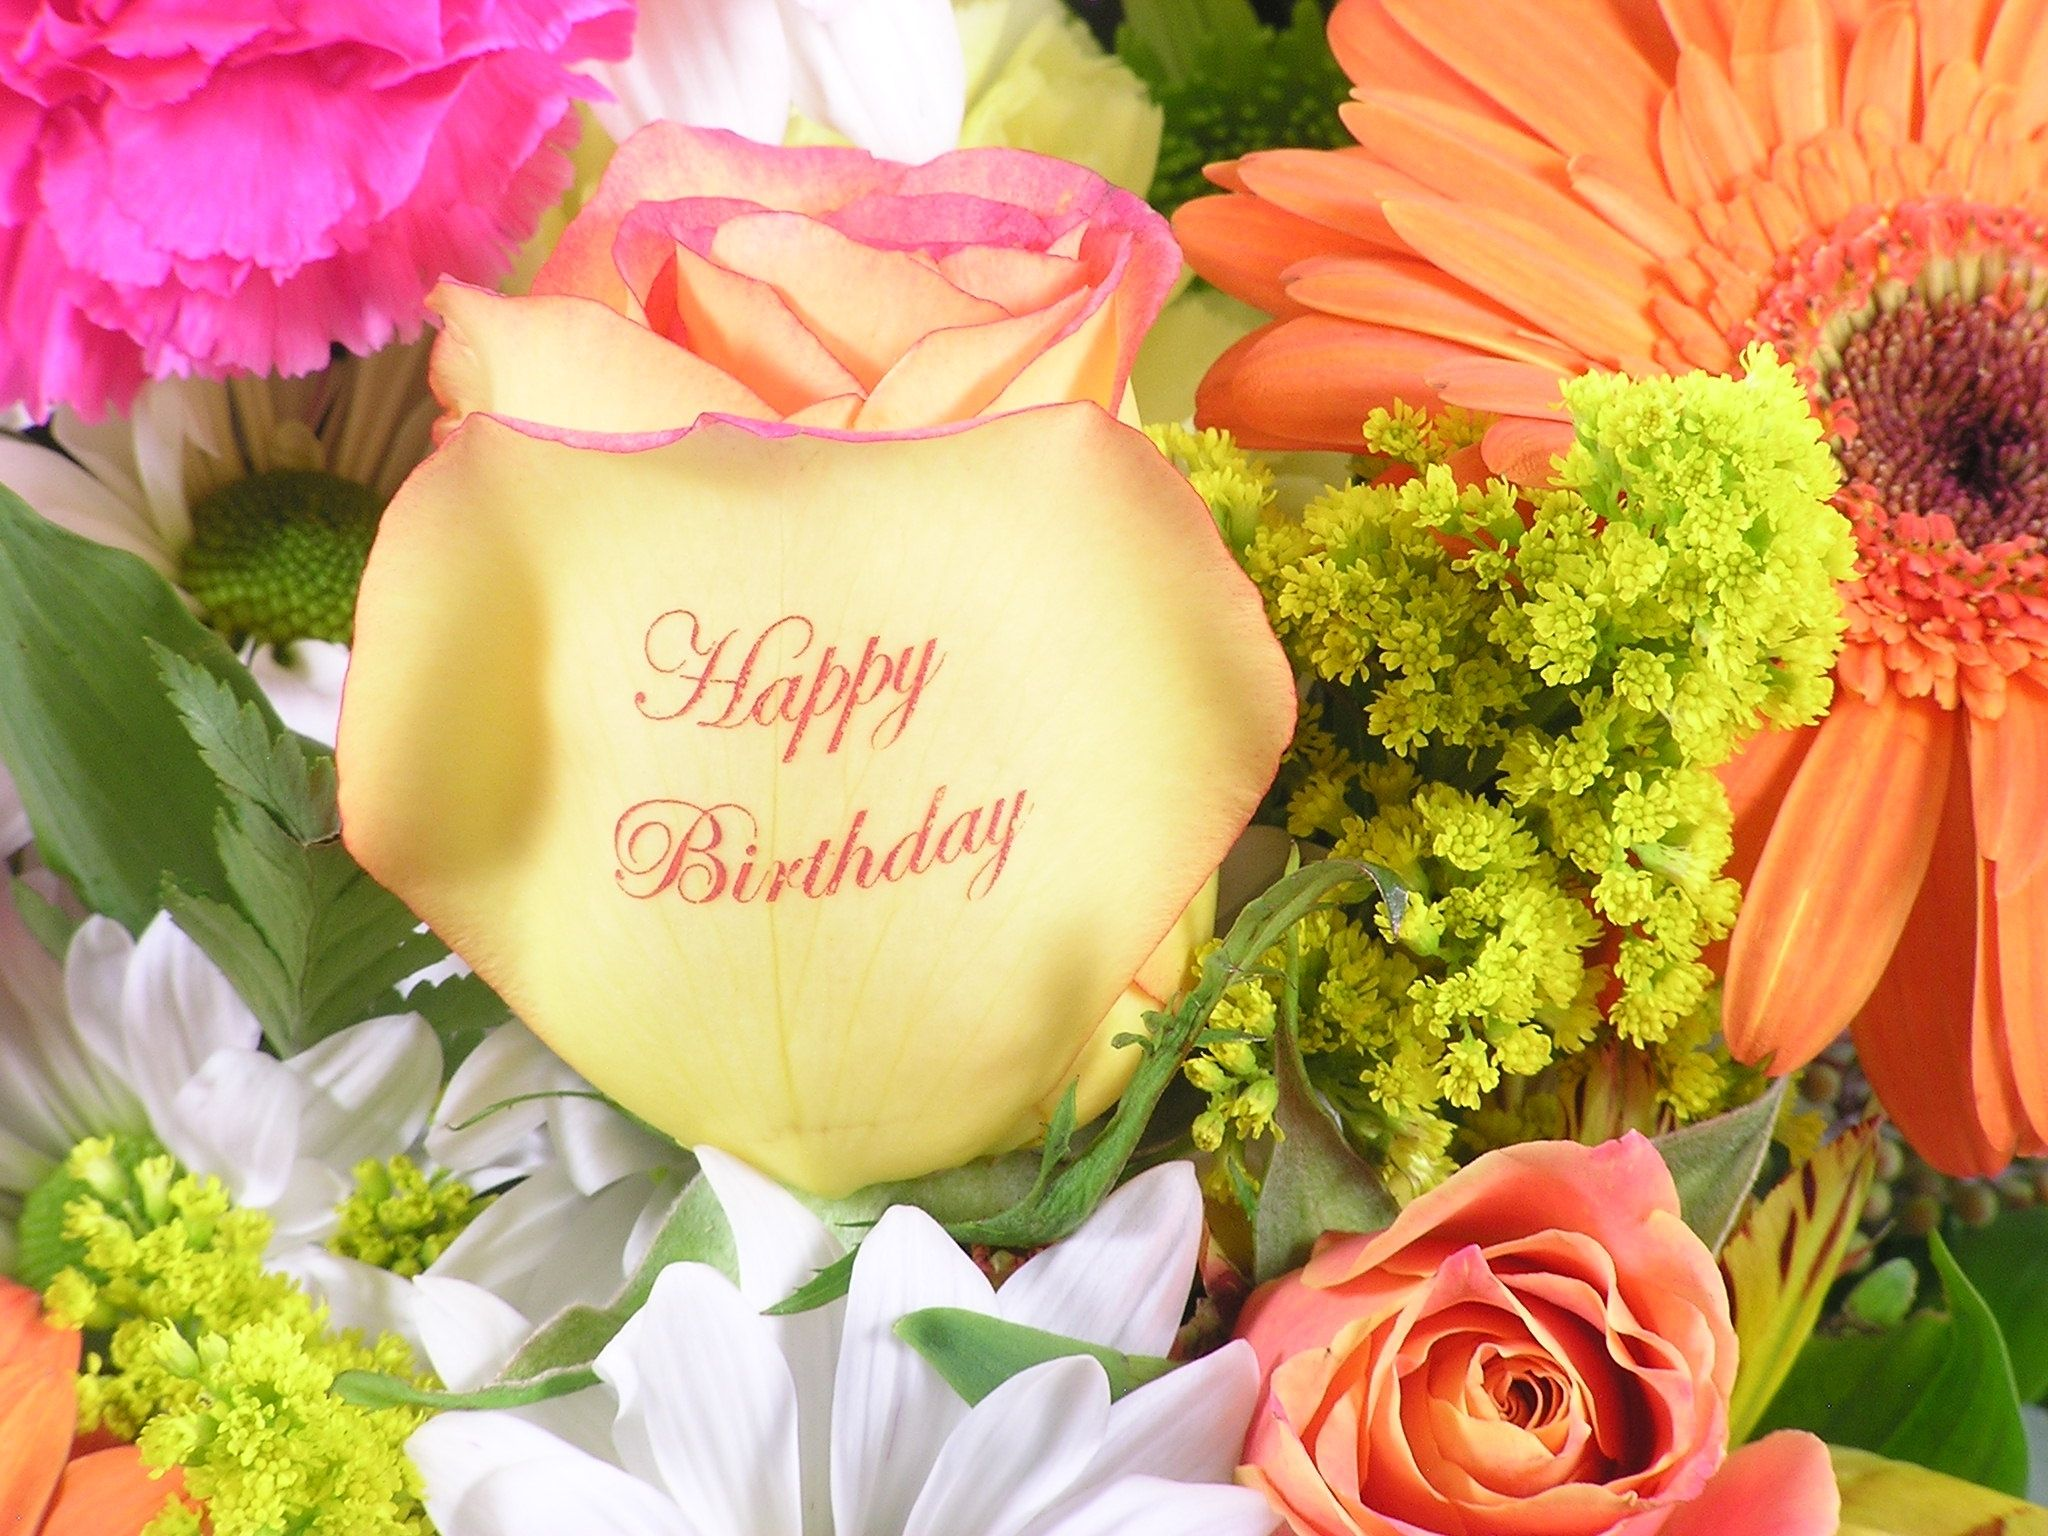 Send a special Happy Birthday greeting with our Speaking Roses